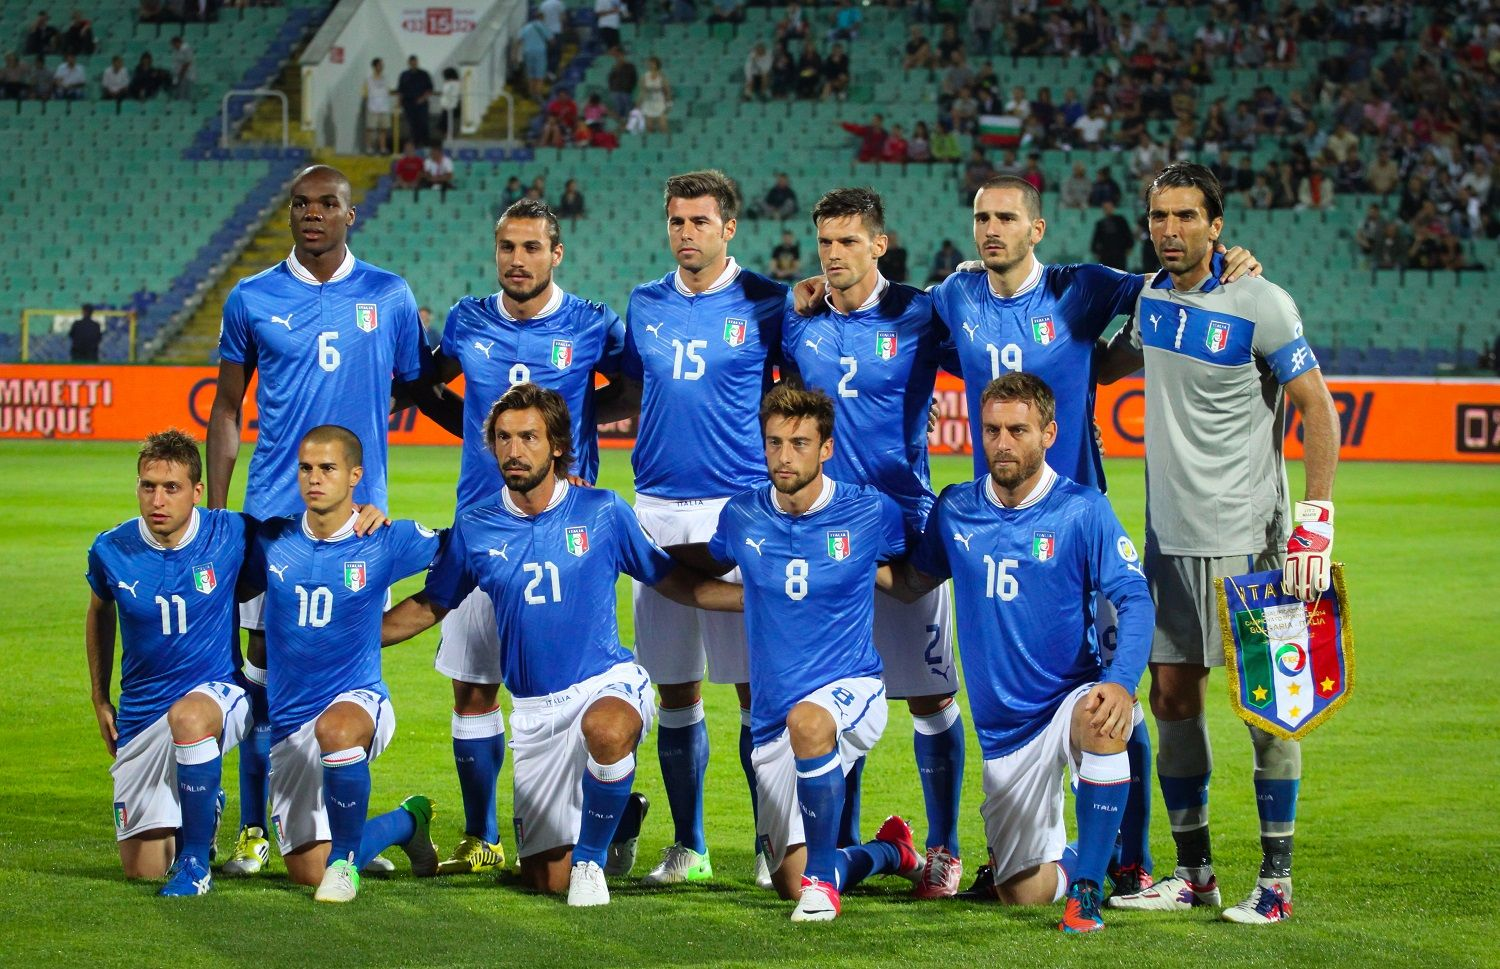 Top 10 Highest-Paid Italian Soccer Players of 2013